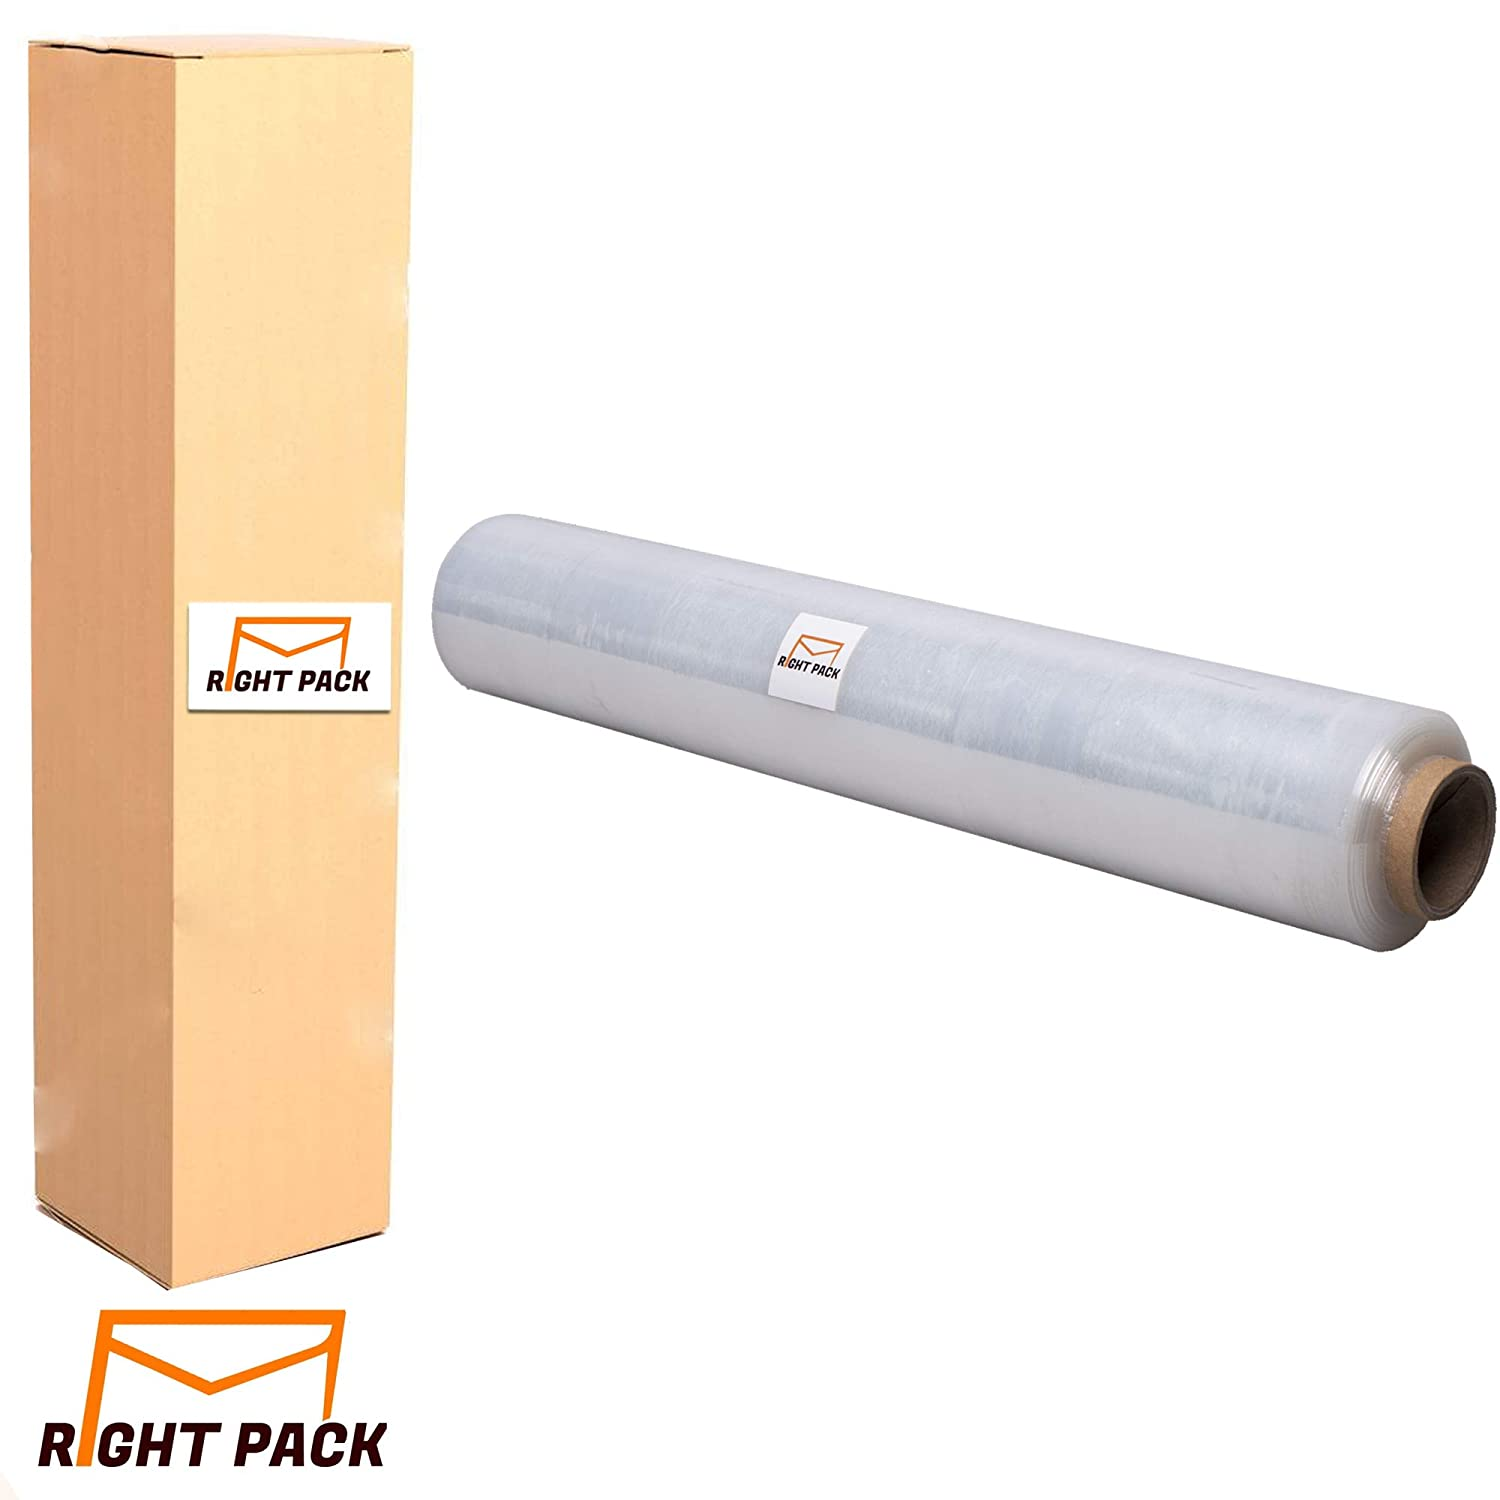 3 STRONG ROLLS CLEAR PALLET STRETCH SHRINK WRAP CAST PARCEL PACKING CLING FILM WIDTH: 400MM